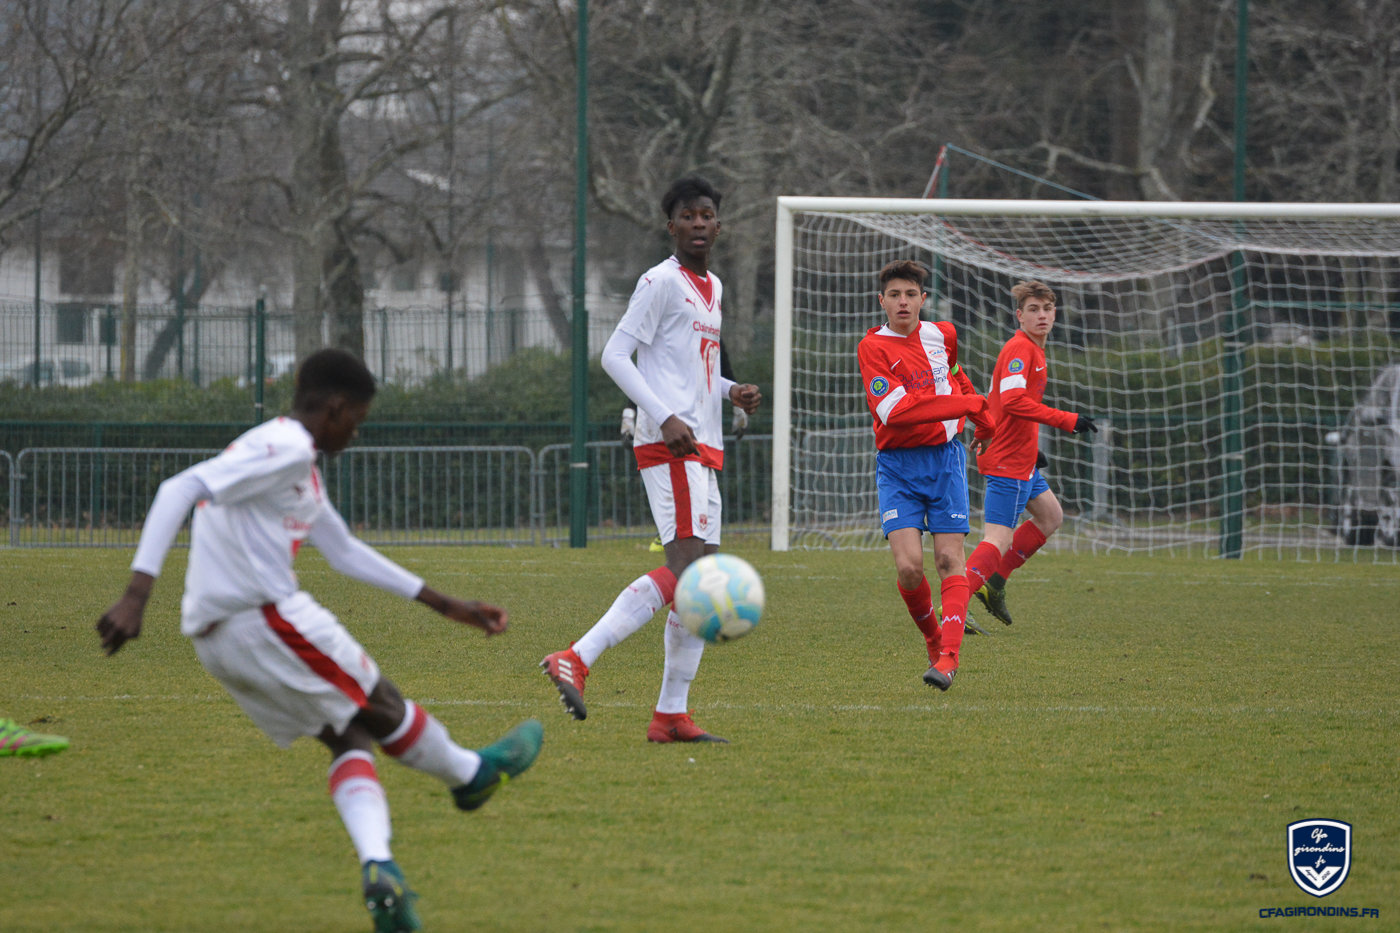 Cfa Girondins : Score nul et vierge contre Bergerac (0-0) - Formation Girondins